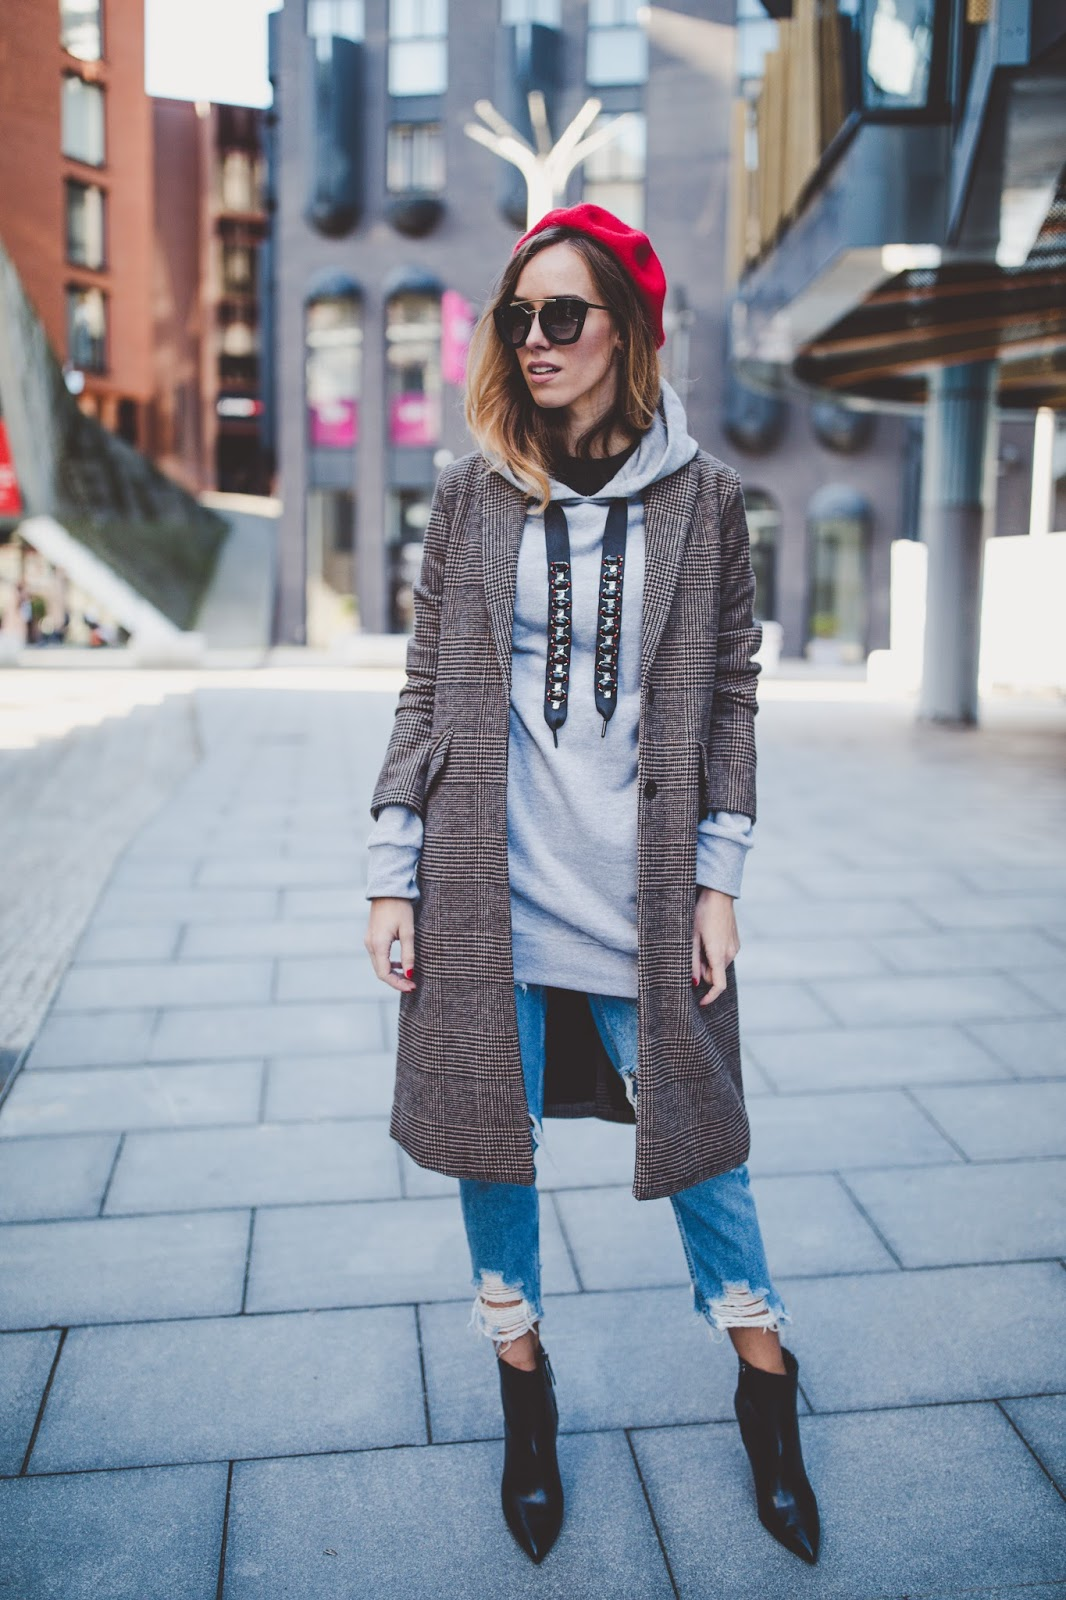 plaid coat sweatshirt outfit fall